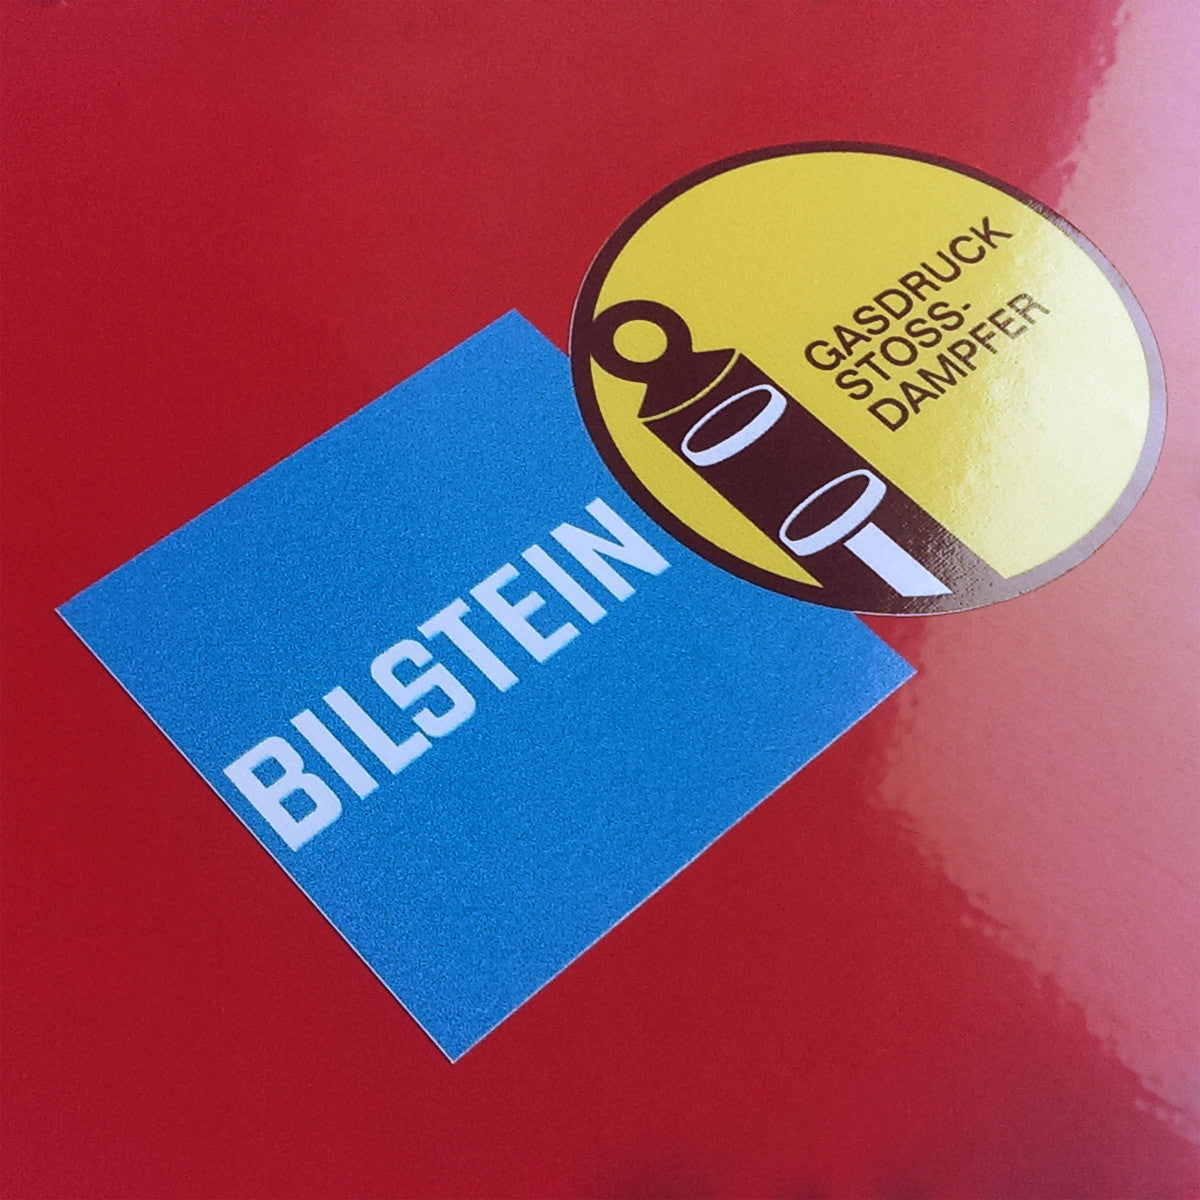 New vintage bilstein decal 2